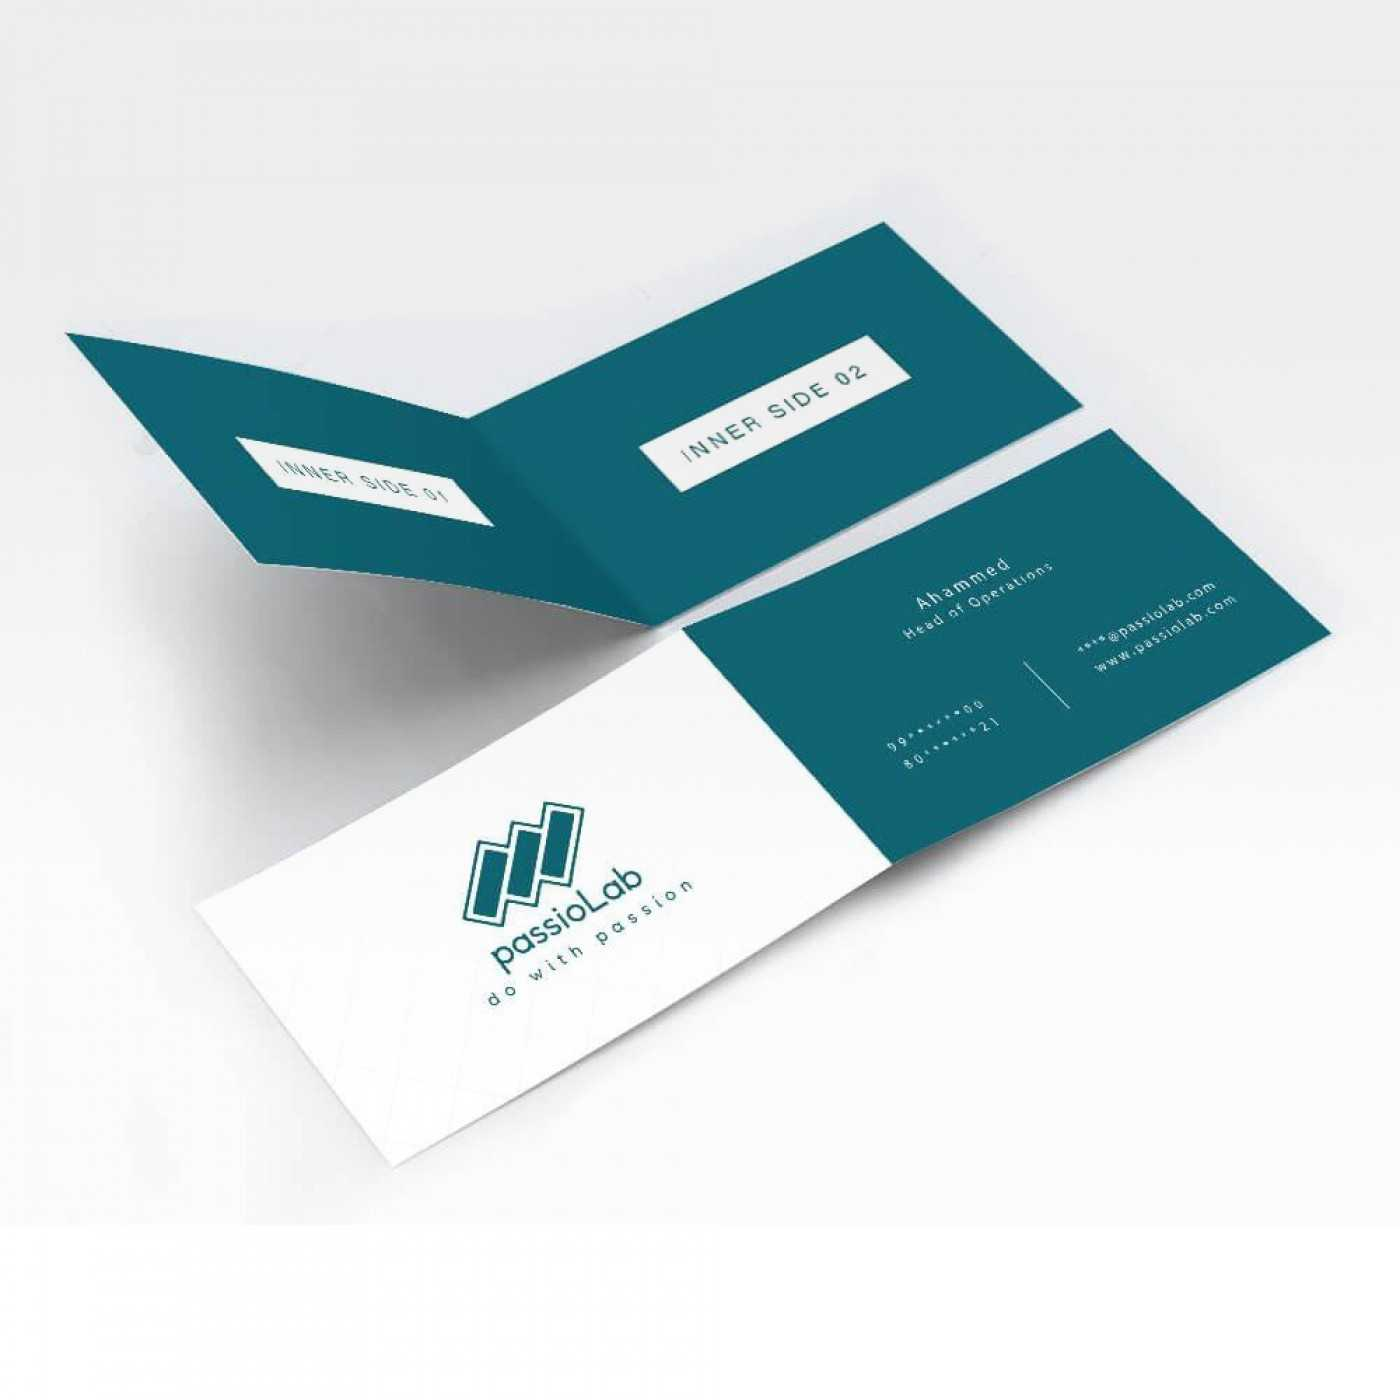 002 Template Ideas Folded Business Card Mock Up Fascinating With Regard To Fold Over Business Card Template